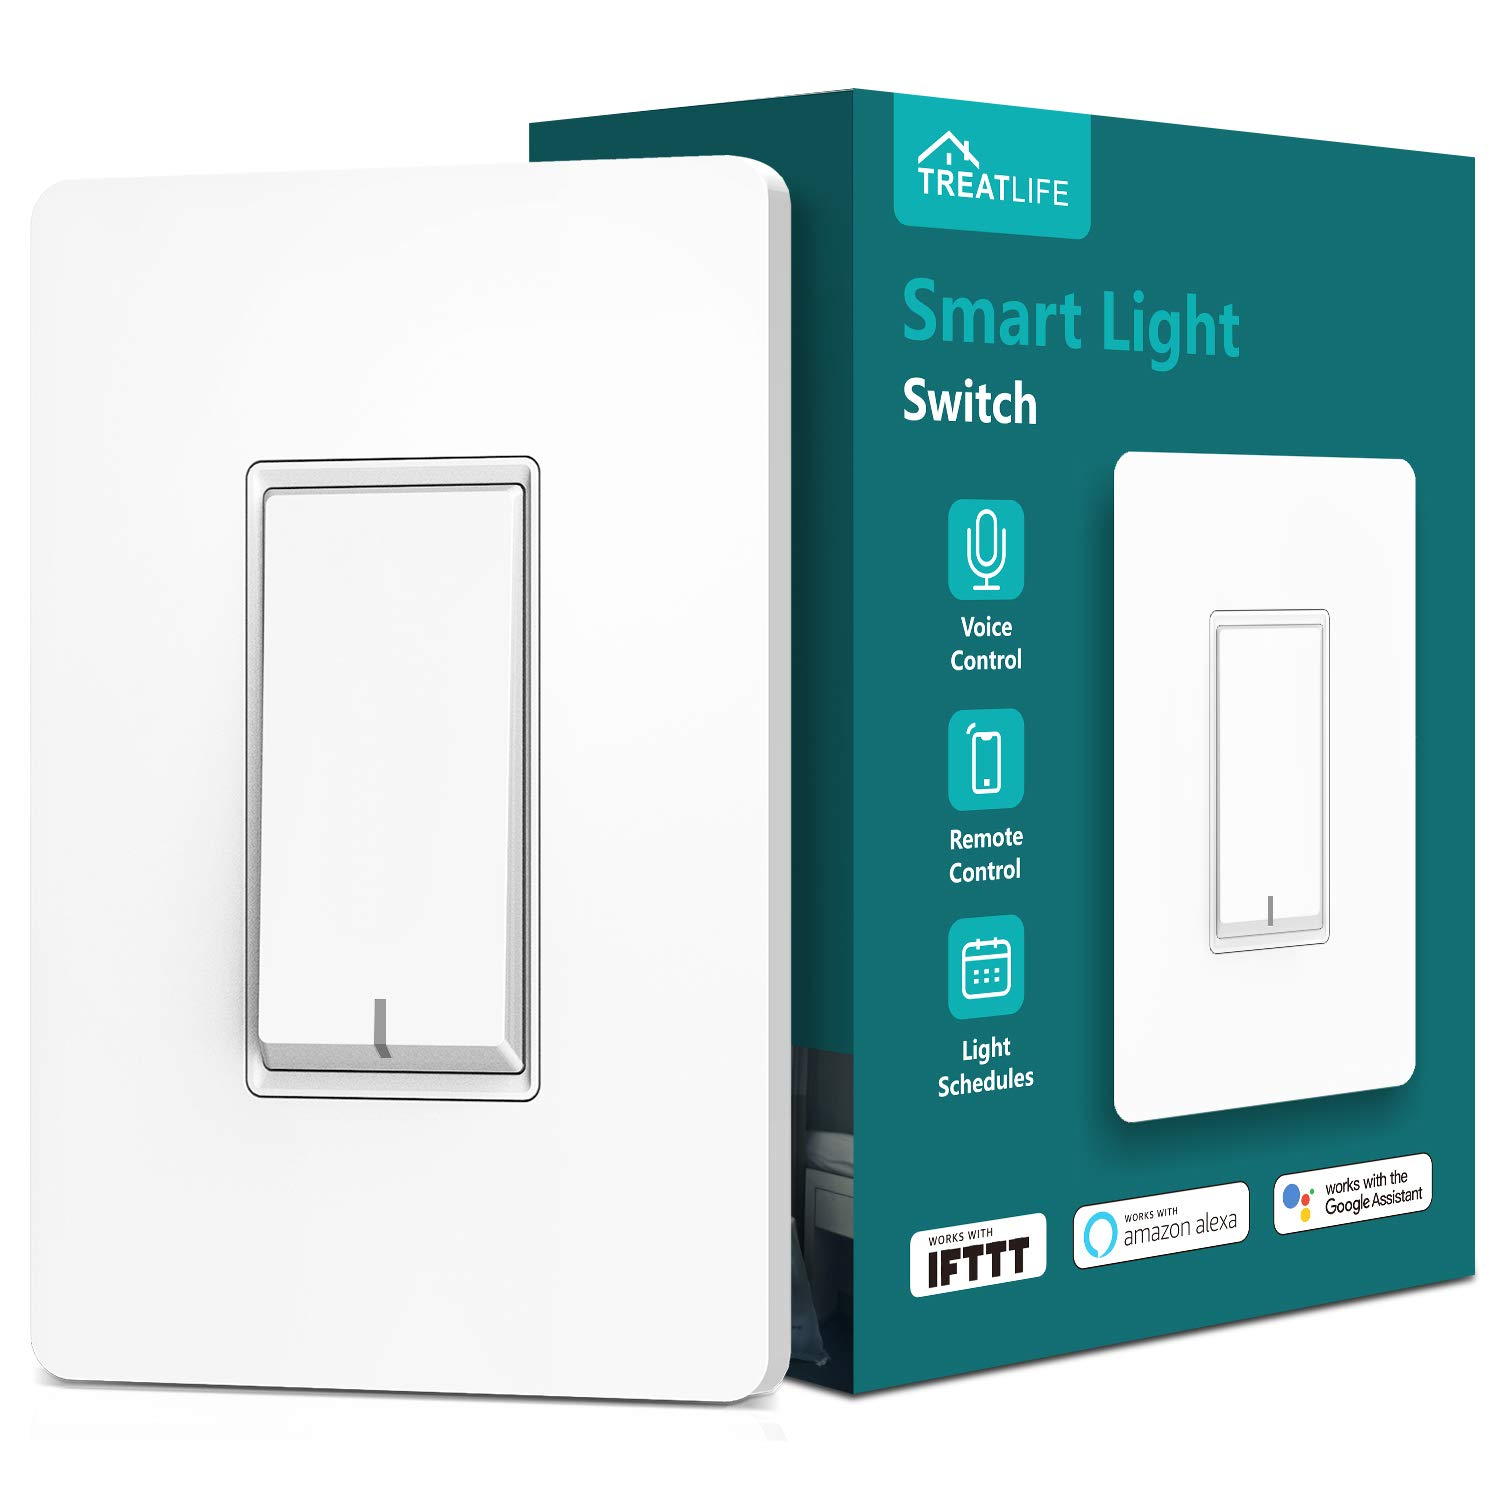 Treatlife Smart Light Switch, Neutral Wire Needed, 2.4Ghz Wi-Fi Light Switch, Works with Alexa, Google Assistant and IFTTT, Schedule, Remote Control, Single Pole, ETL Listed (1 PACK) by TREATLIFE